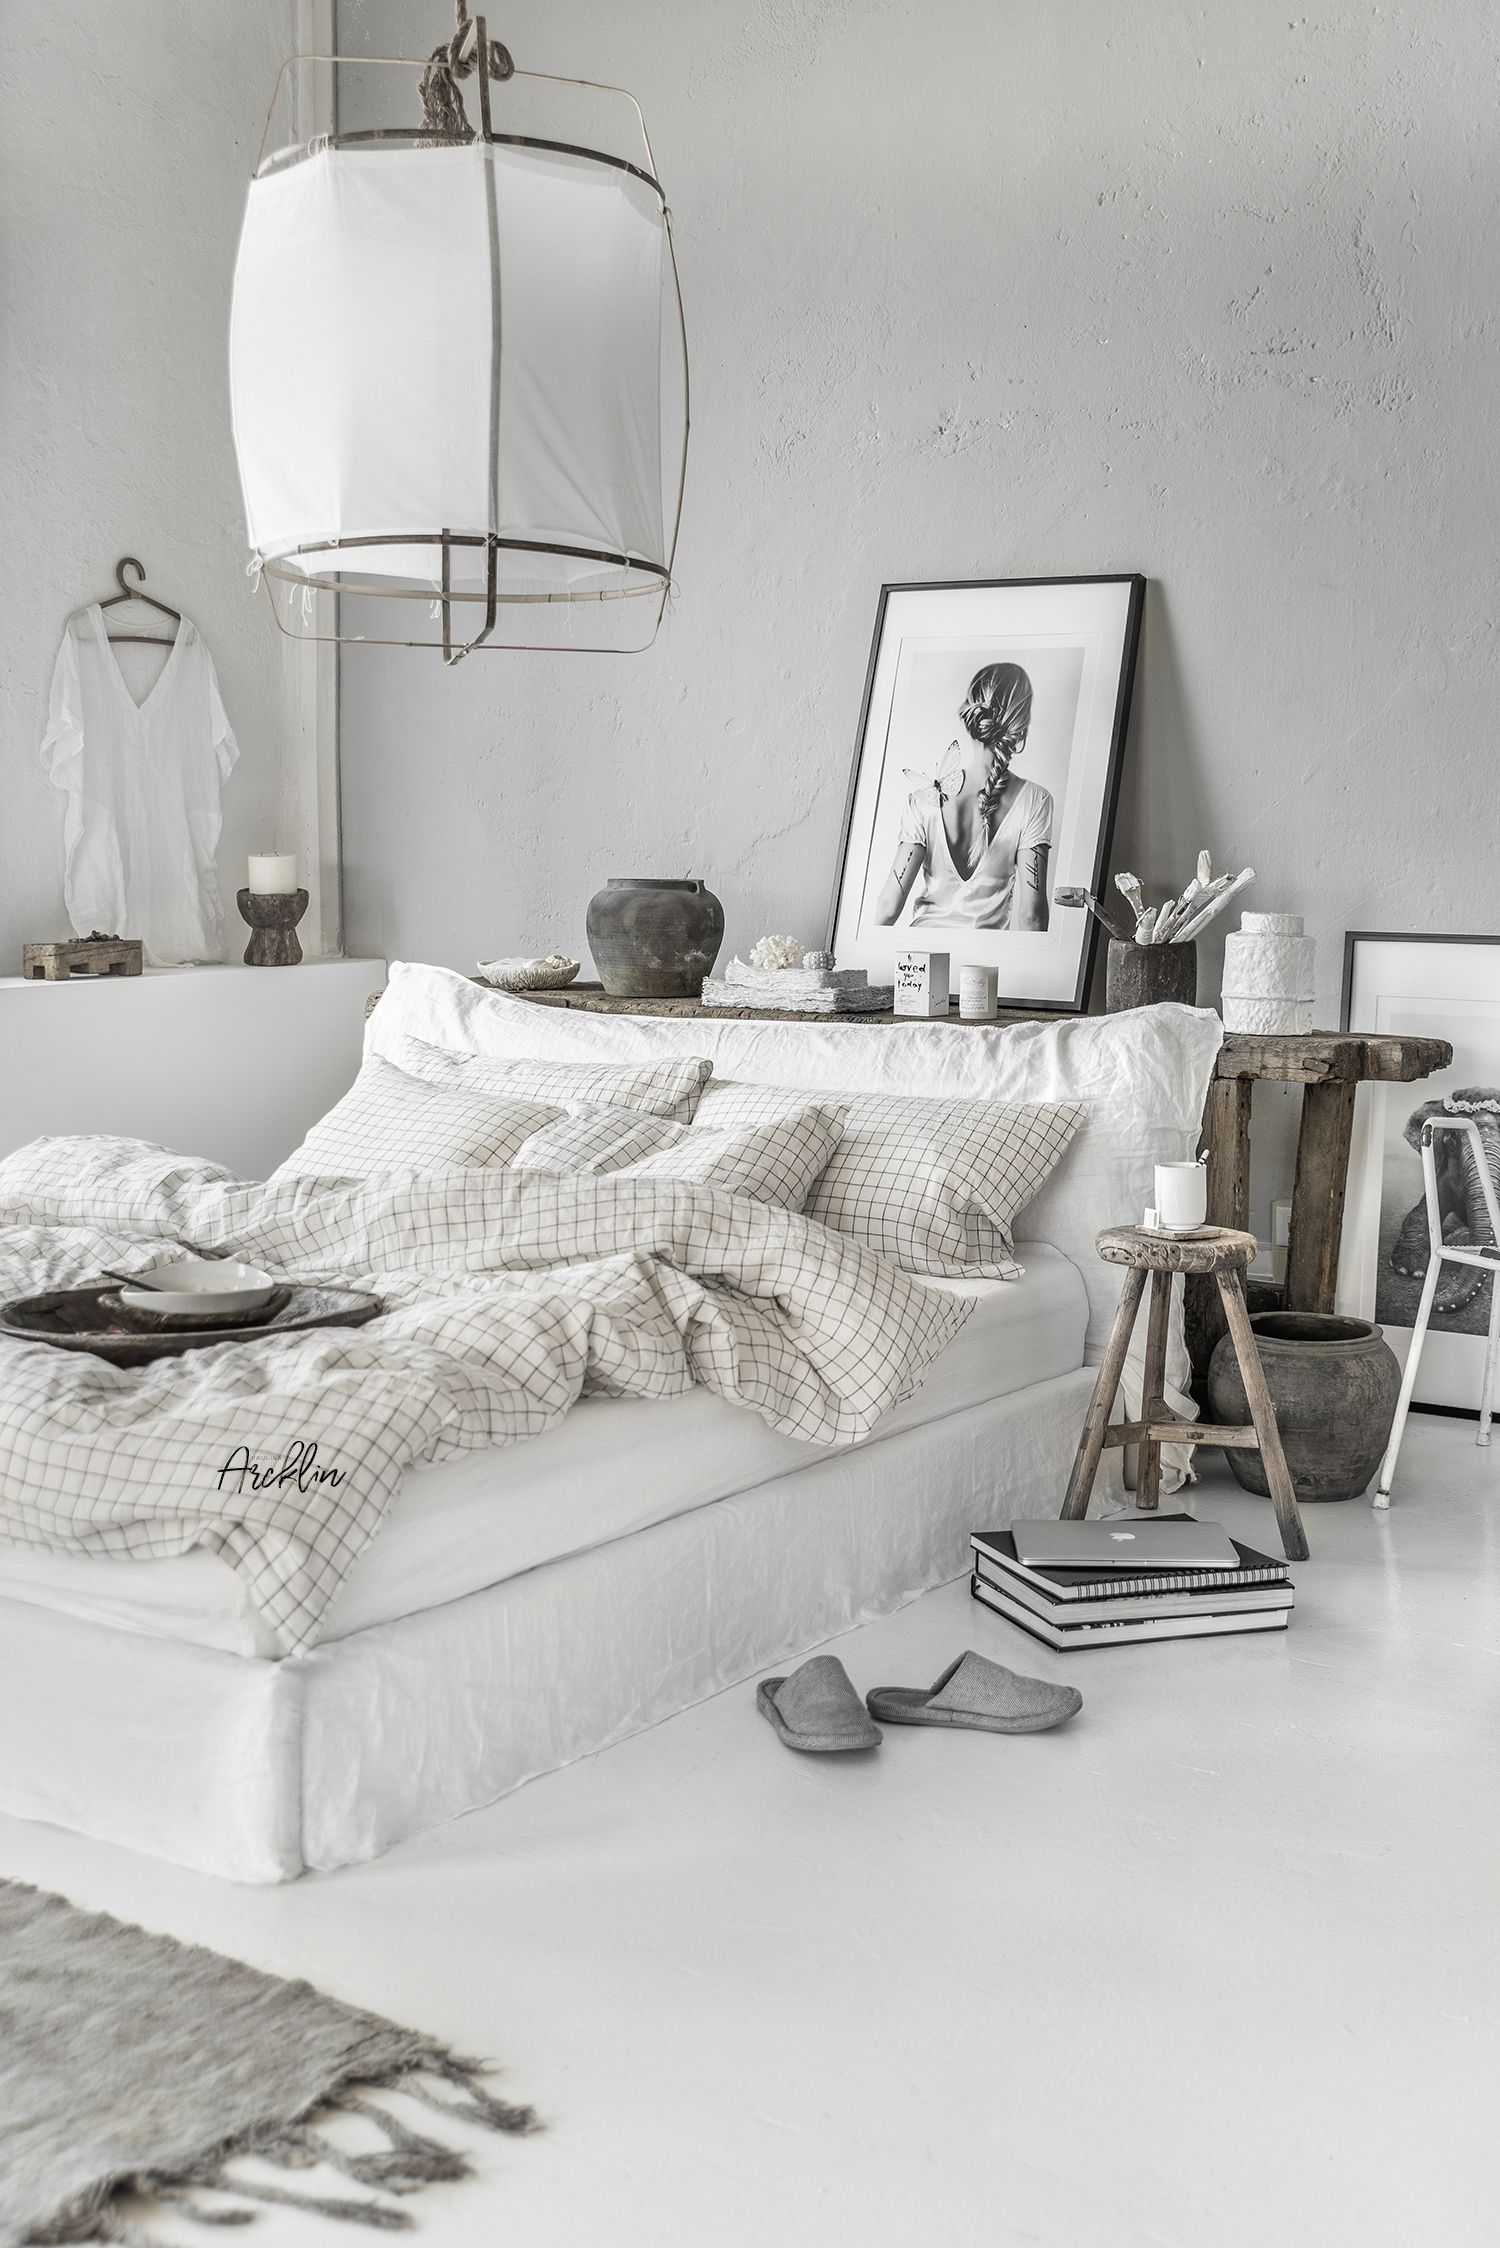 Magic linen beddings  charcoal grid portfolio paulina arcklin photography styling cosy interior also best home design ideas images future house decor bedrooms rh pinterest